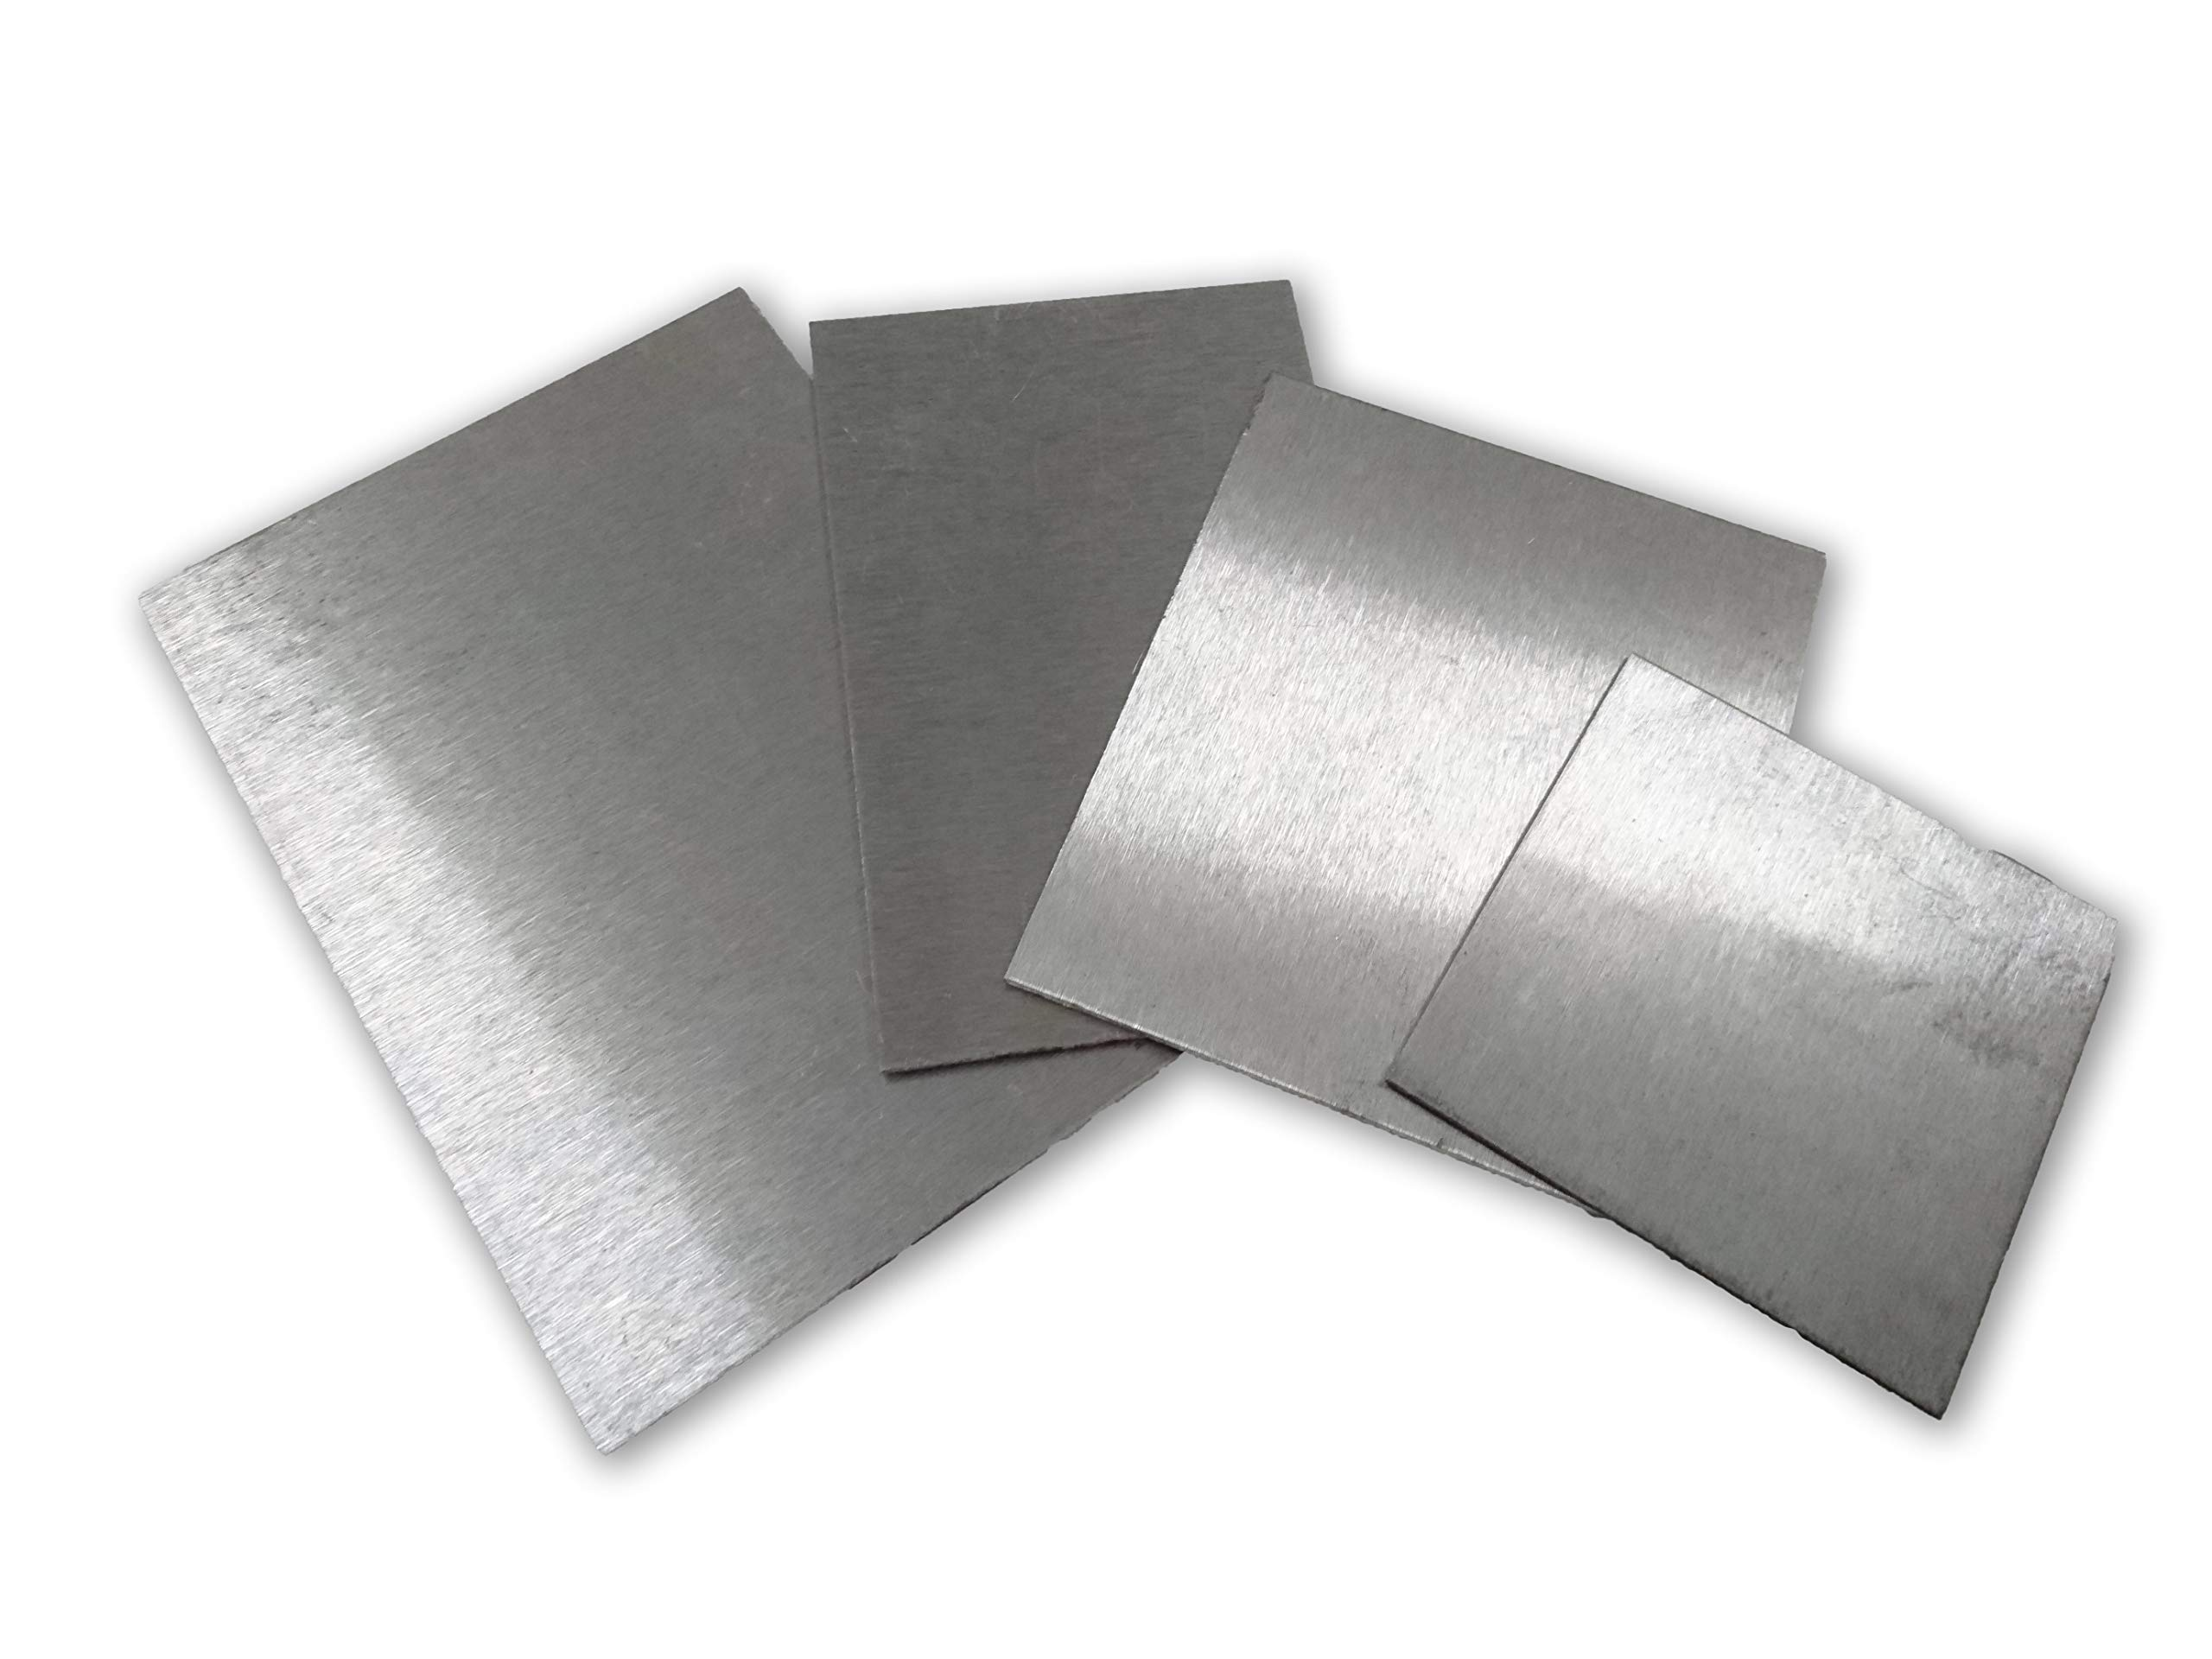 Light Metal Plates Magnesium Alloy Machinery Parts Panel Magnesium Foil Sheet AZ31B 0.197'' Thin 5mm Magnesium Rudder Pedal by More Metals